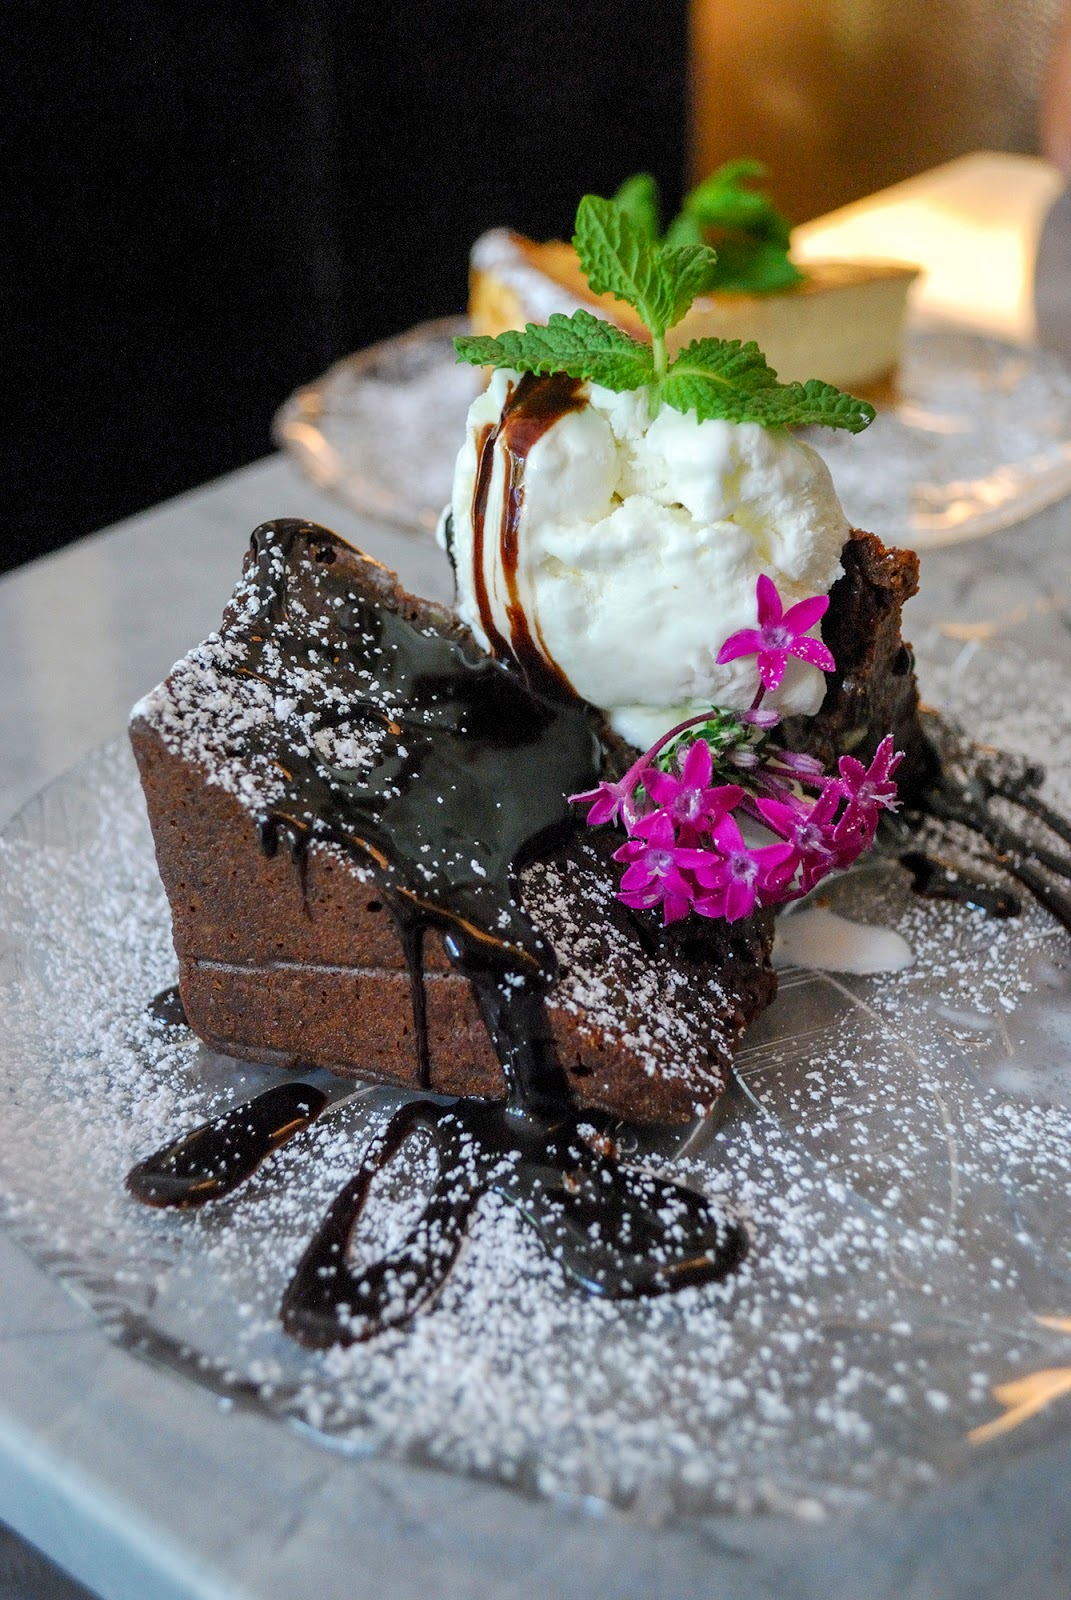 gigi romantic restaurant chamberi luchana madrid chocolate brownie